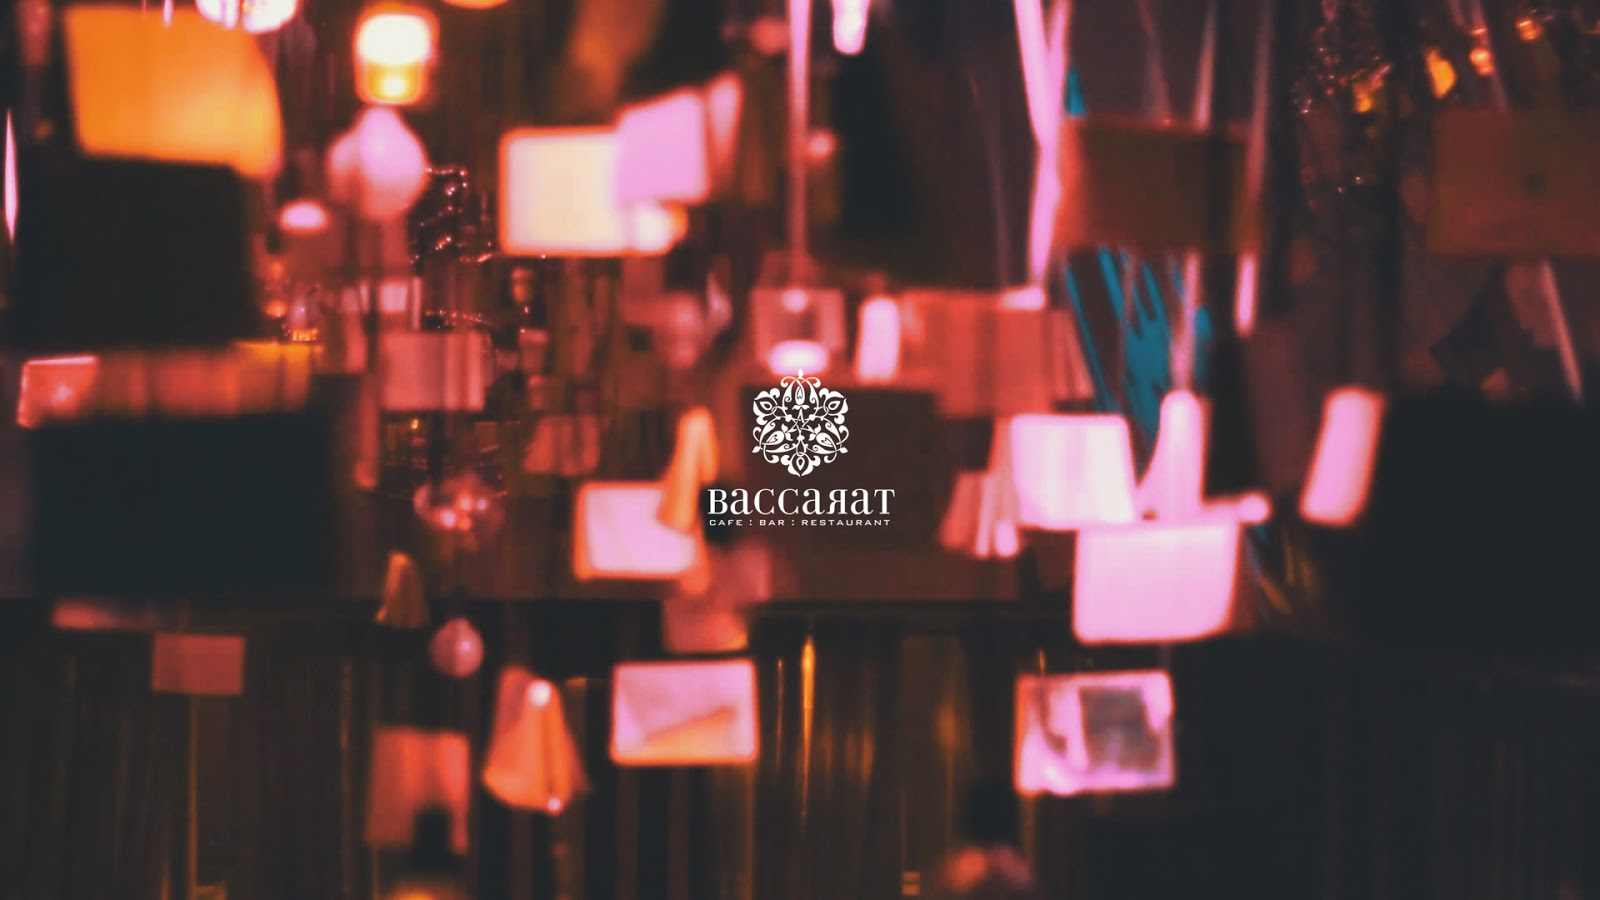 Baccarat Autumn Nights Vol. 1 (Nightlife Trailer)